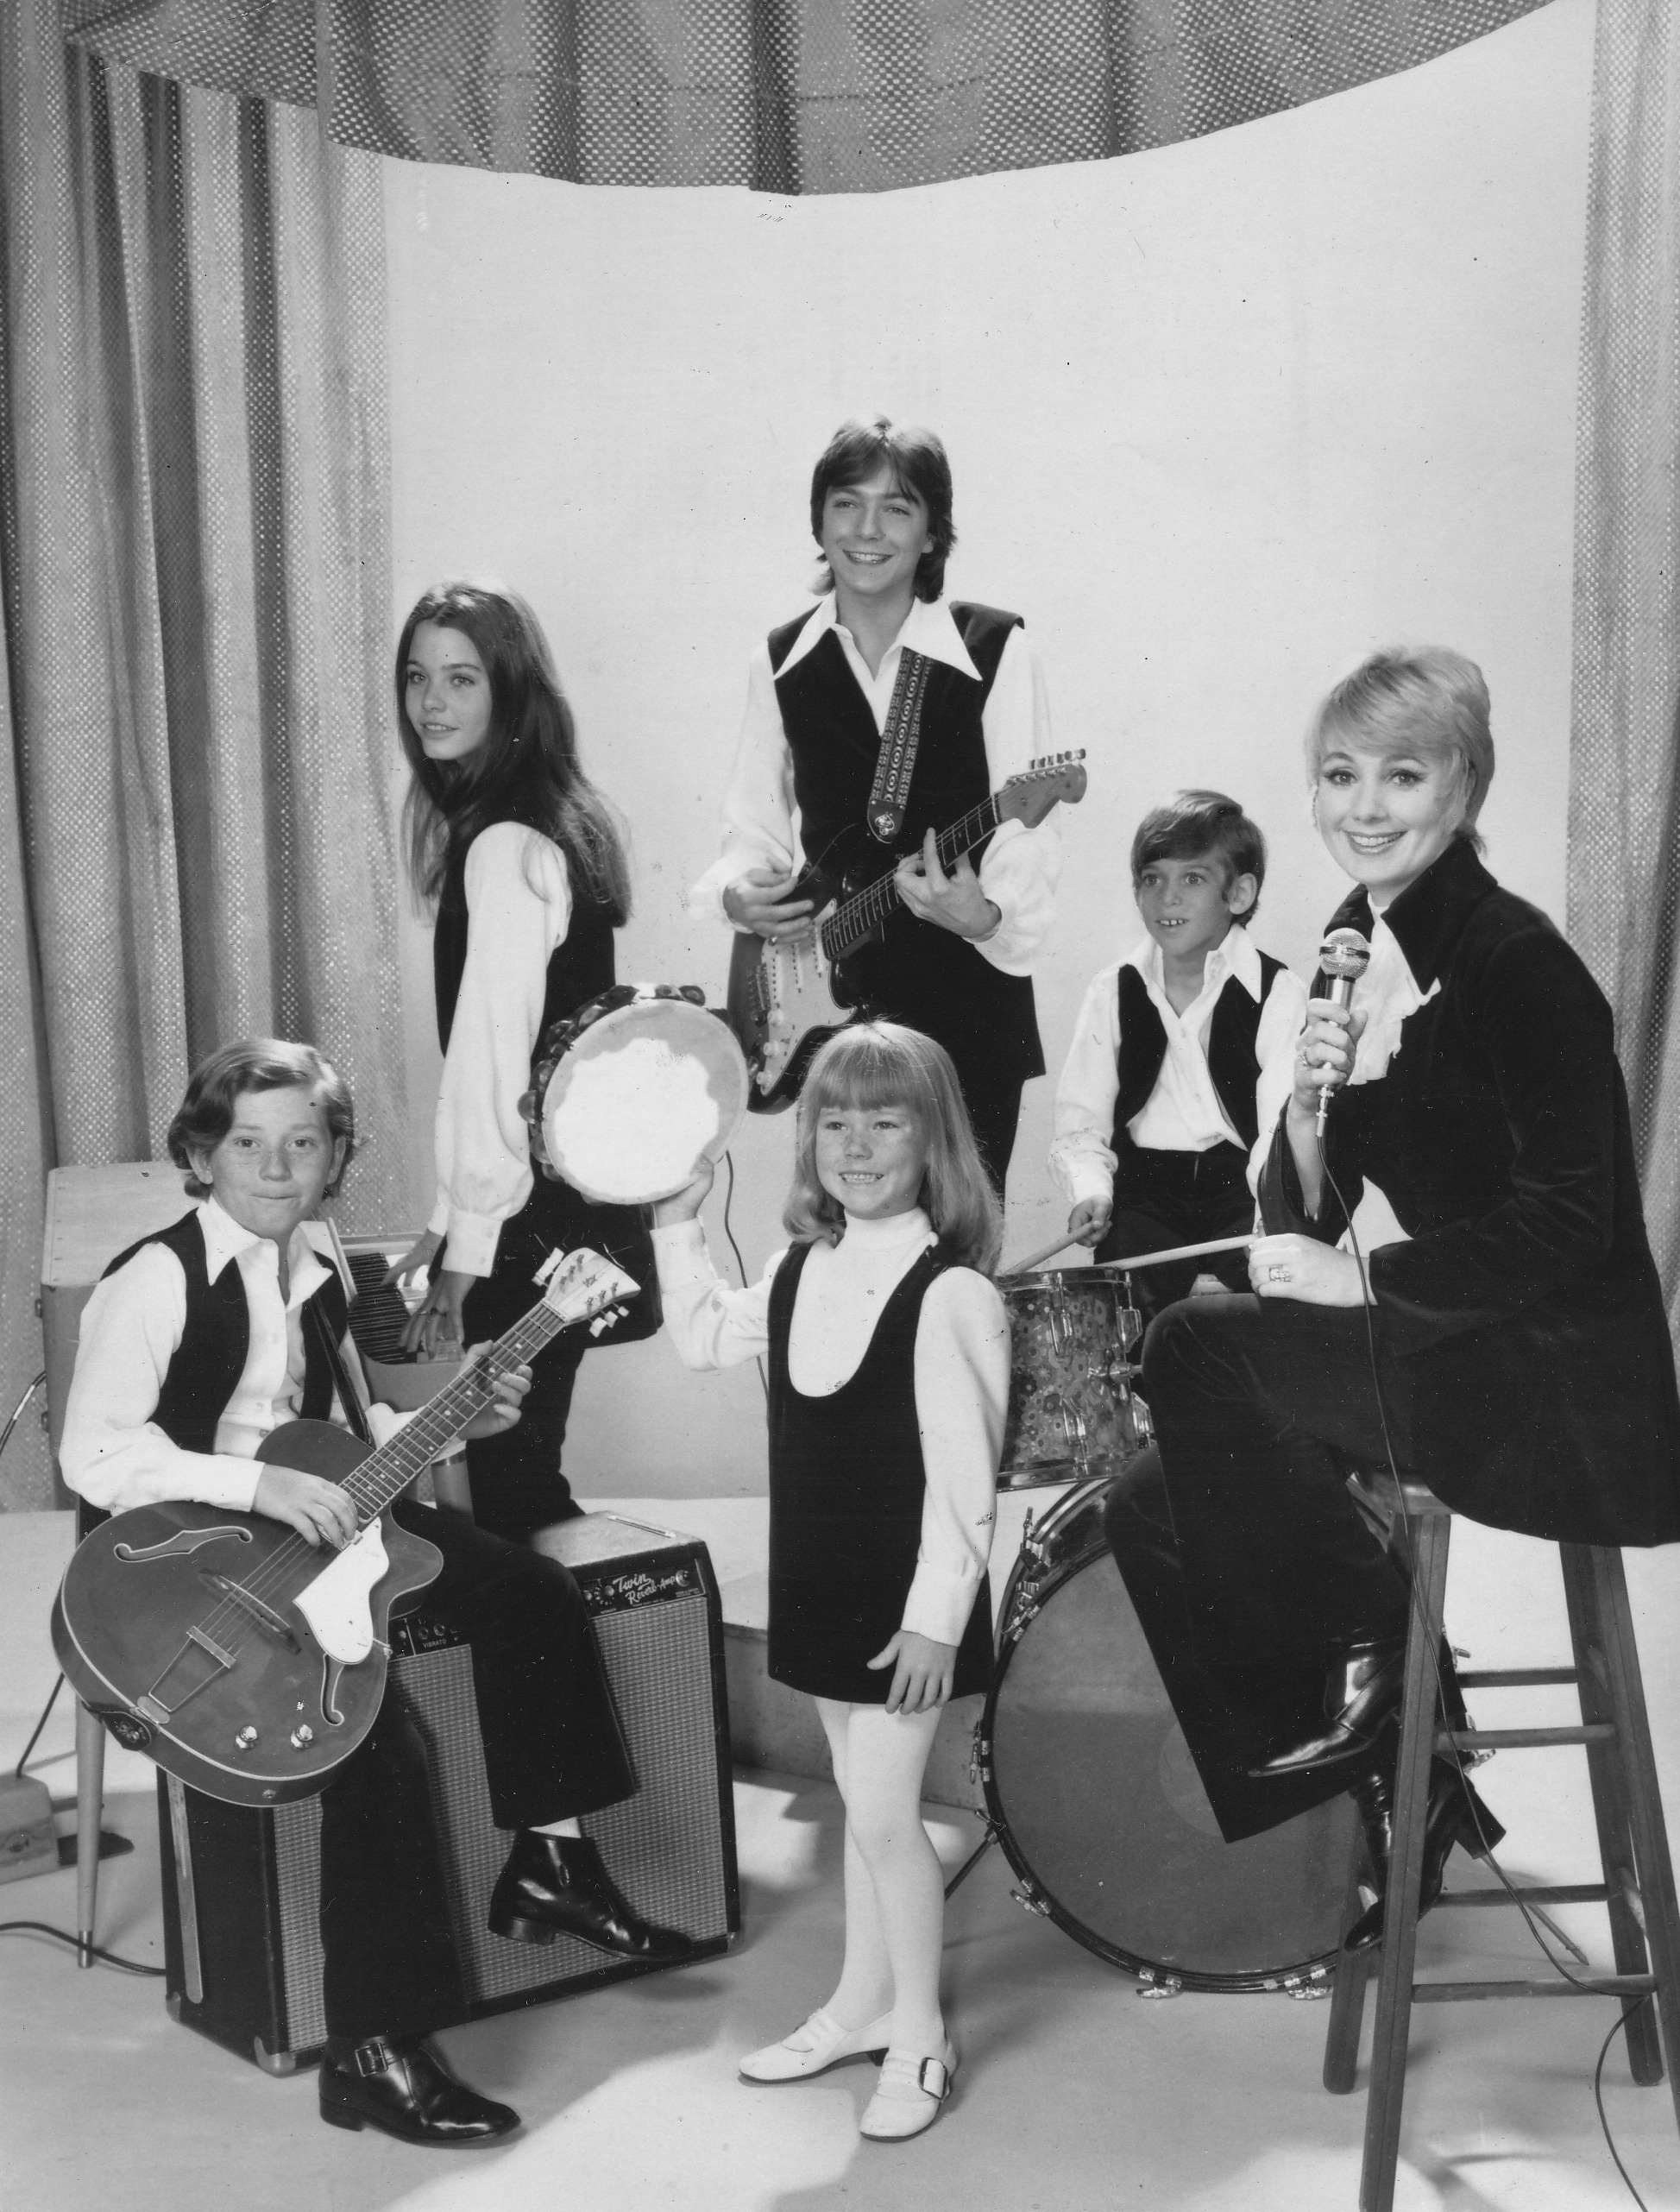 http://upload.wikimedia.org/wikipedia/commons/7/77/The_Partridge_Family_Cast_1970_No_2.jpg